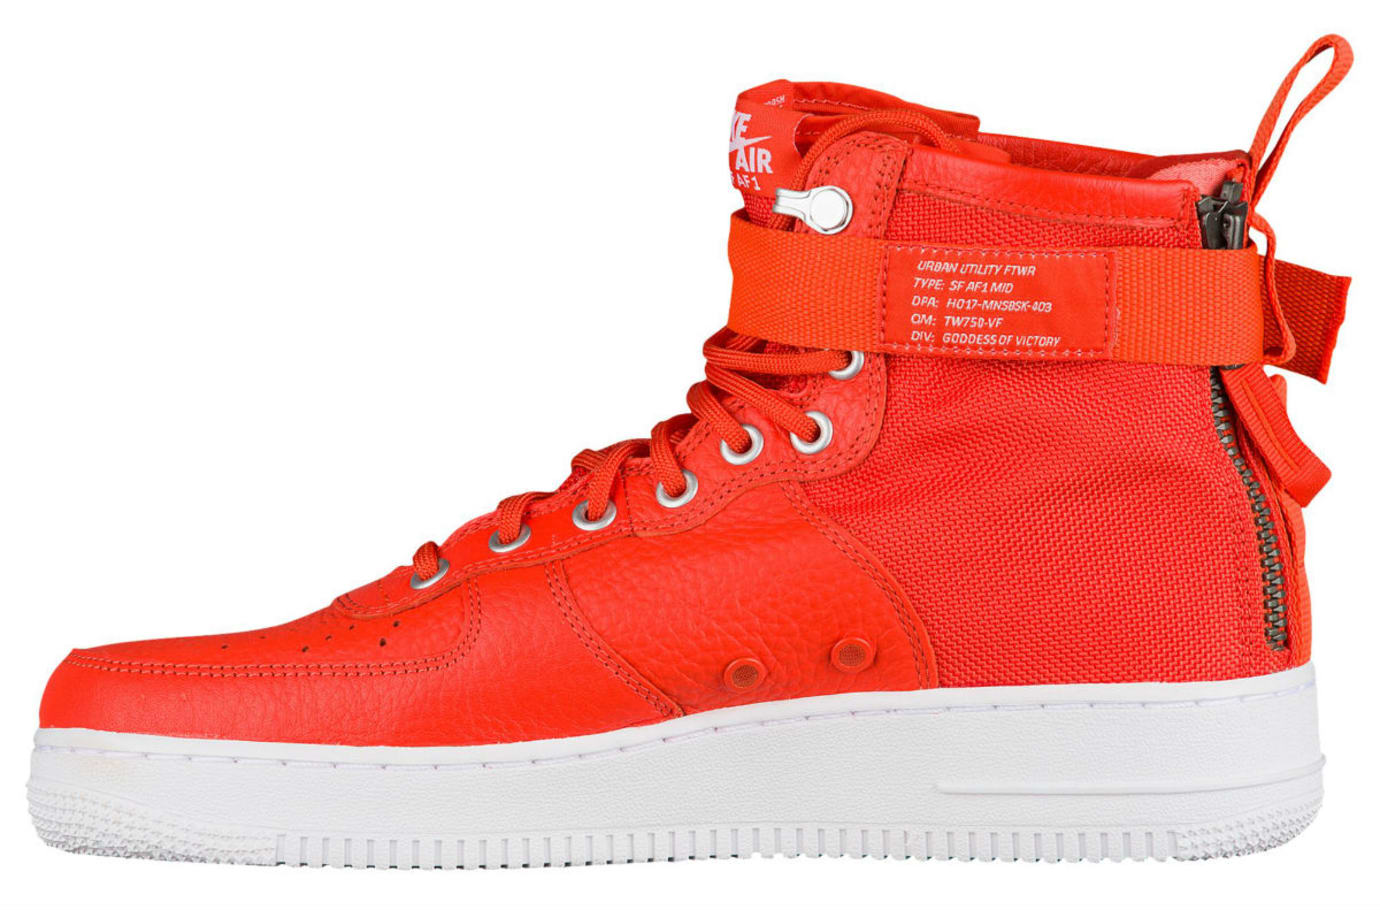 Nike SF Air Force 1 Mid Team Orange Release Date Medial 917753-800